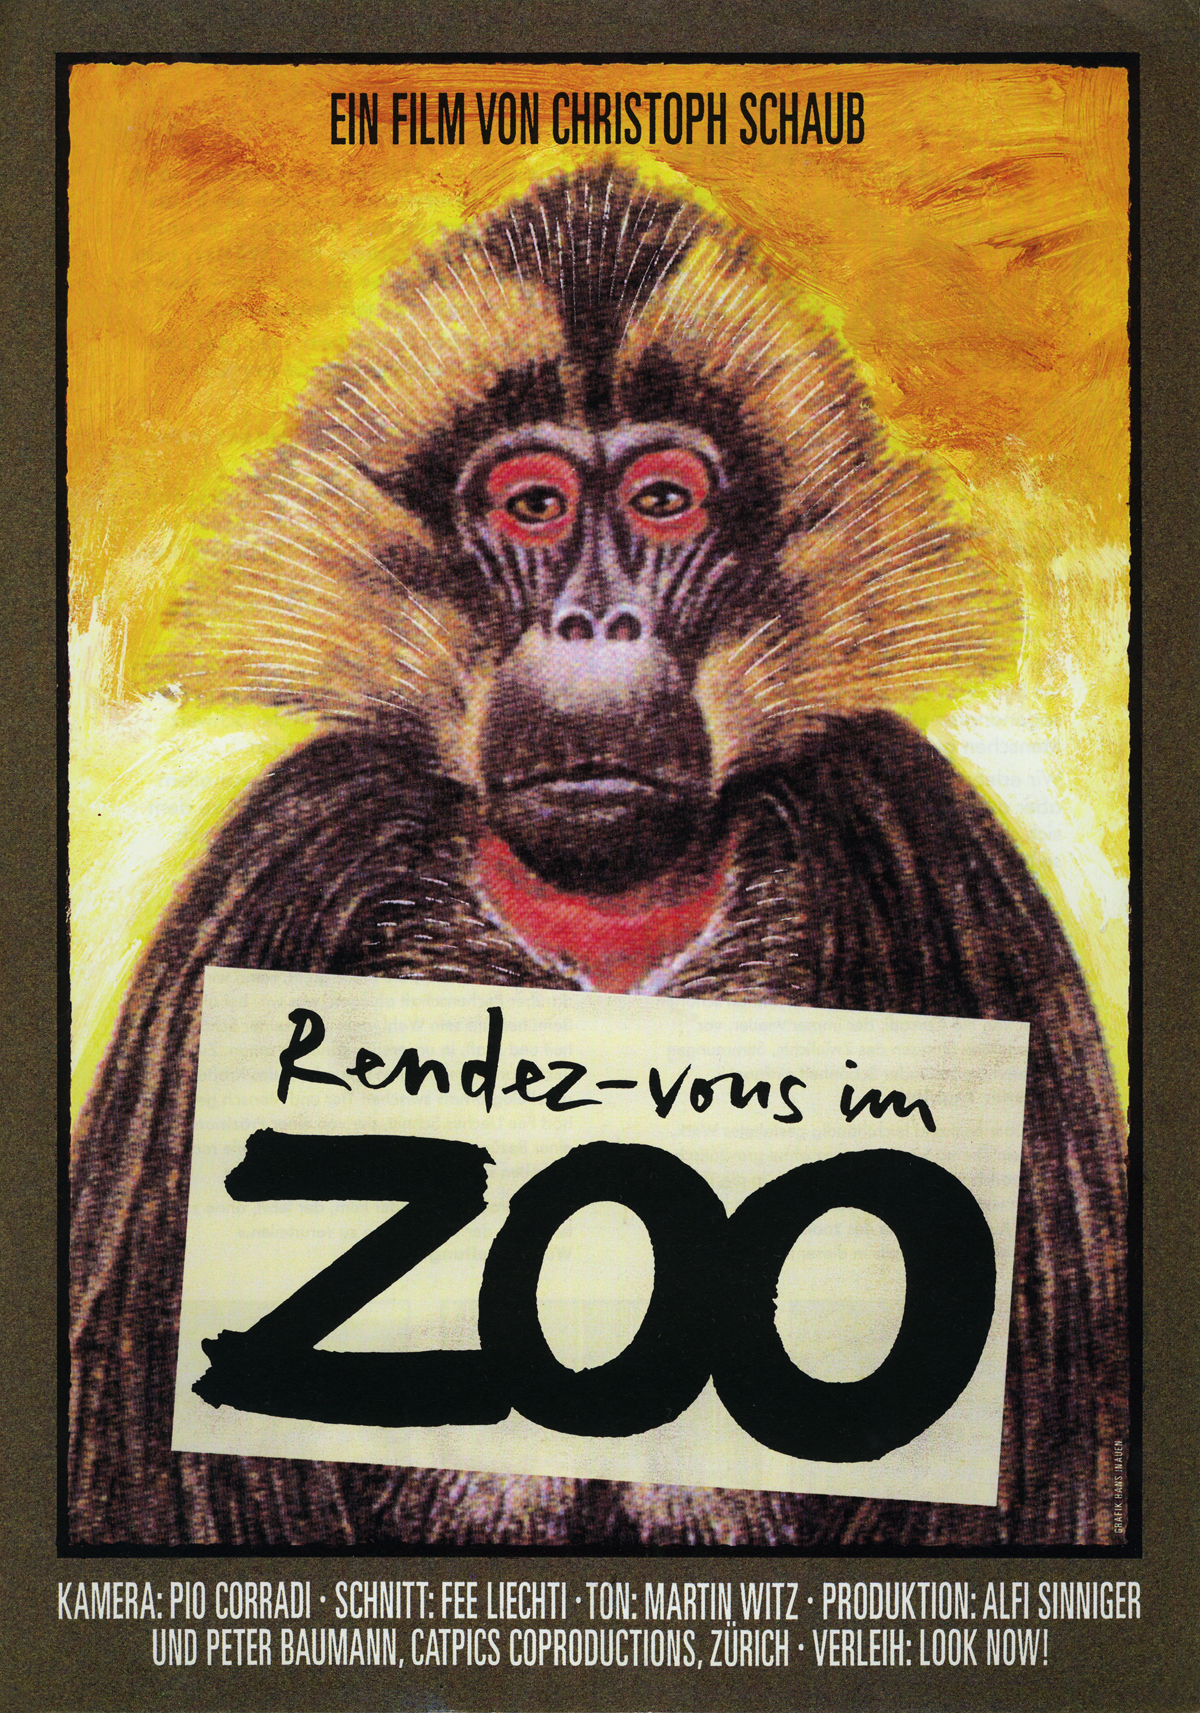 The Rendez-vous in the Zoo